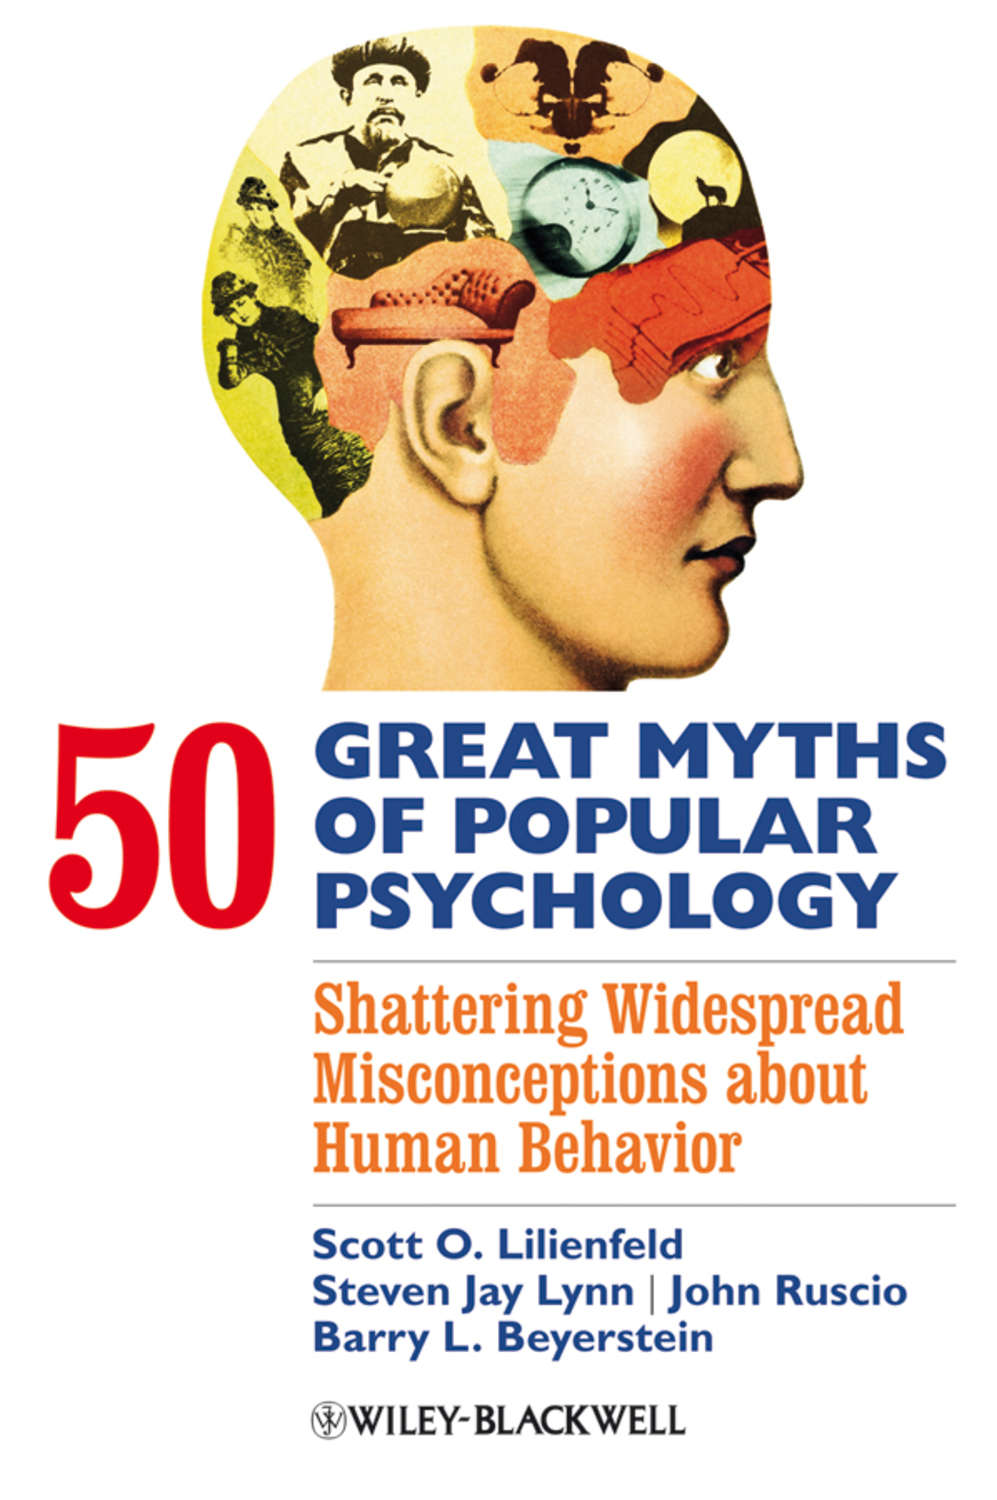 misconceptions of psychology Little by little, through the incredible discussions that have been taking place here on my blog, i am getting a better grasp of where some of the misconceptions surrounding both the field of psychology and mental-health issues come from.